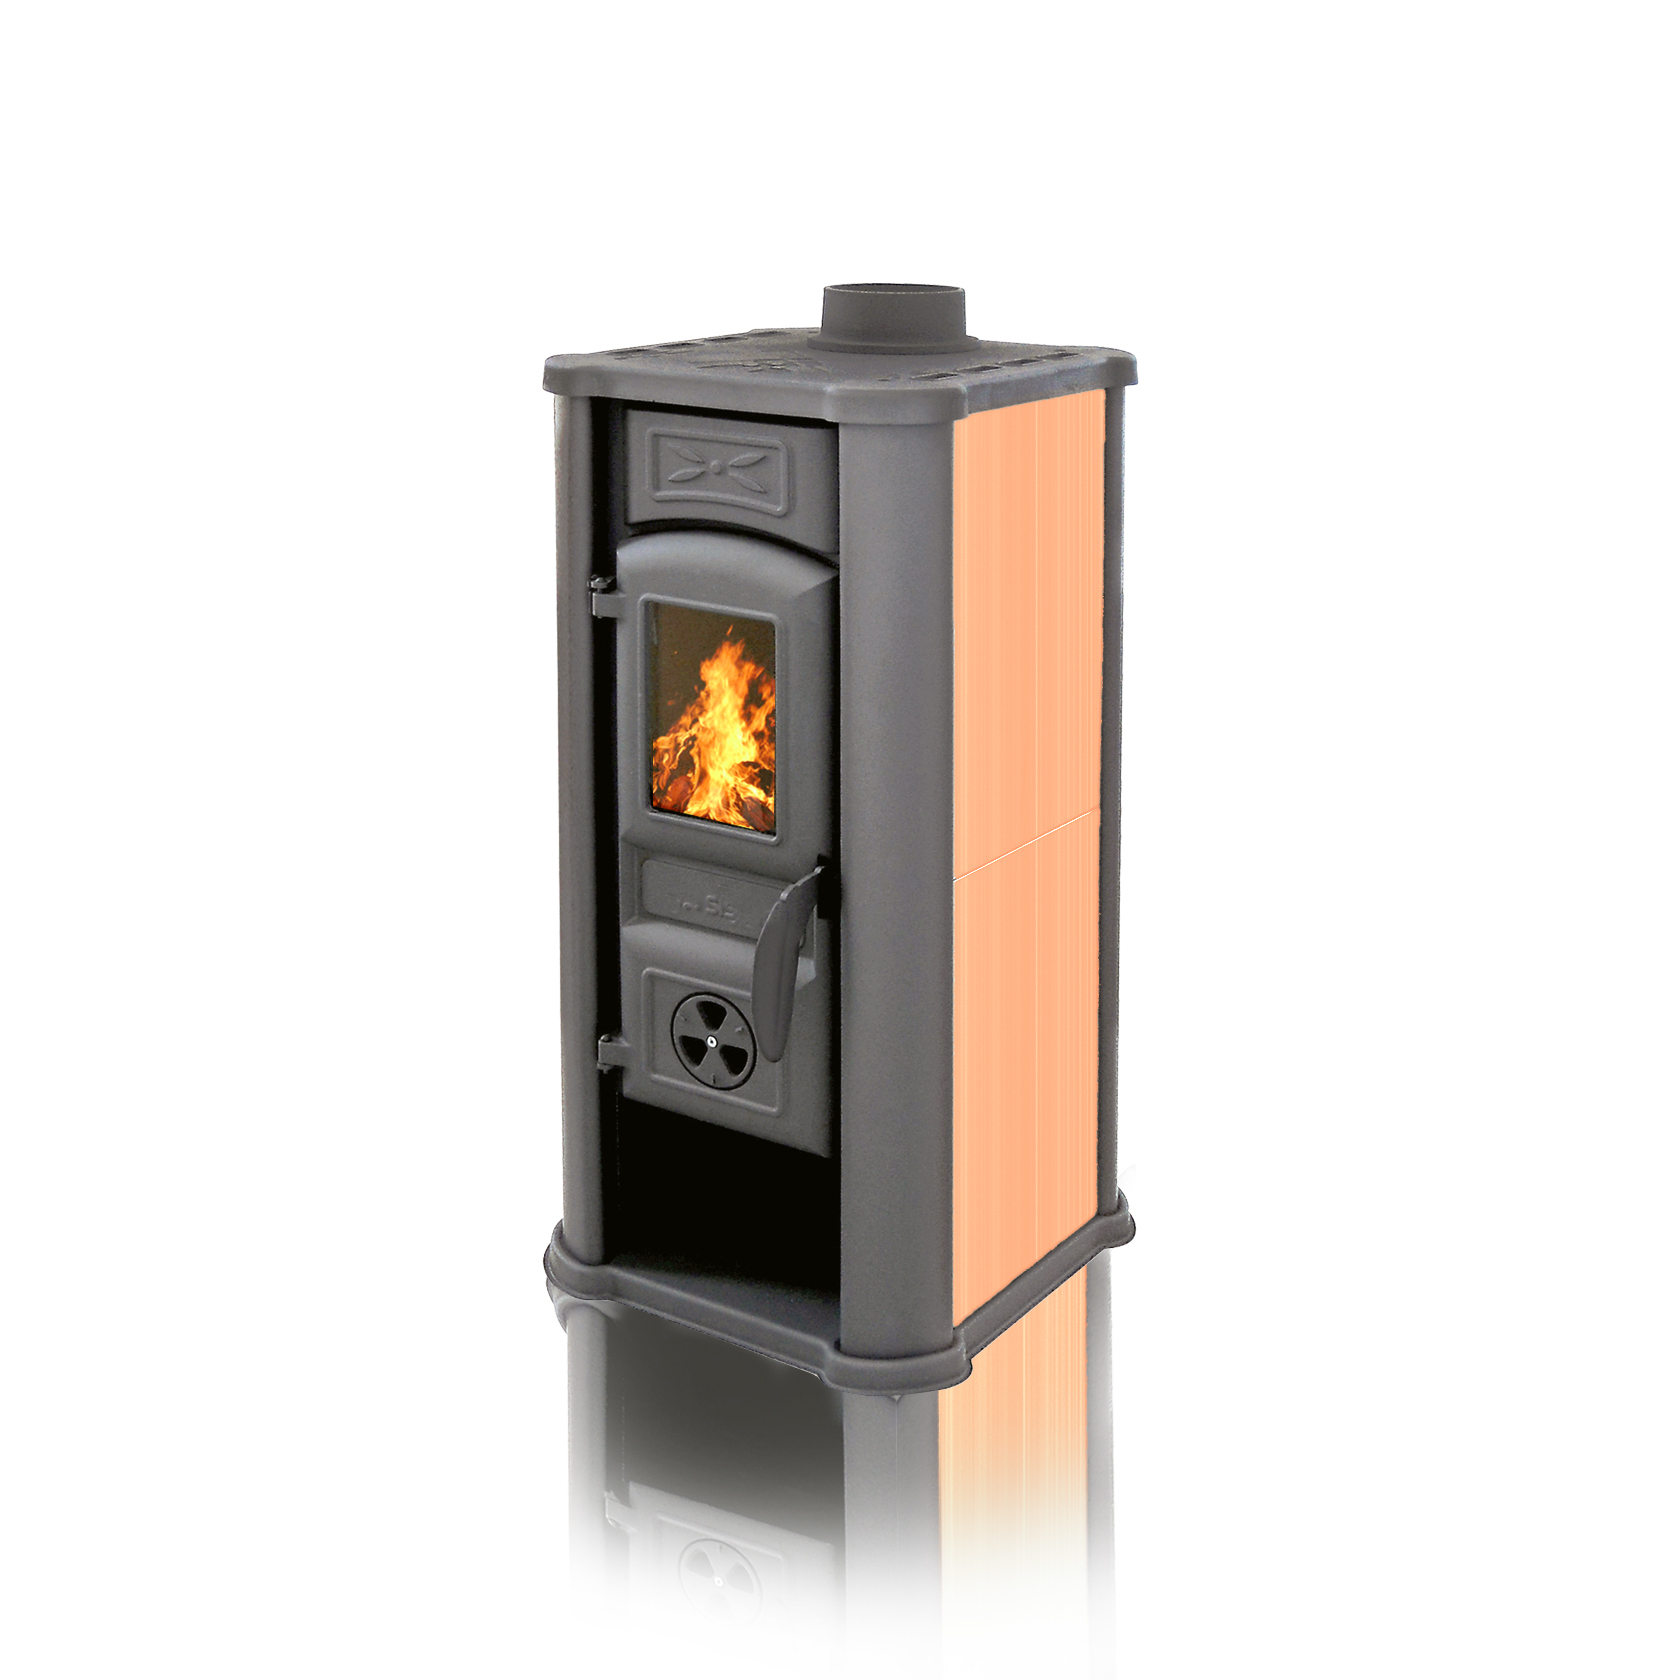 Fireplace Diana orange 6kW